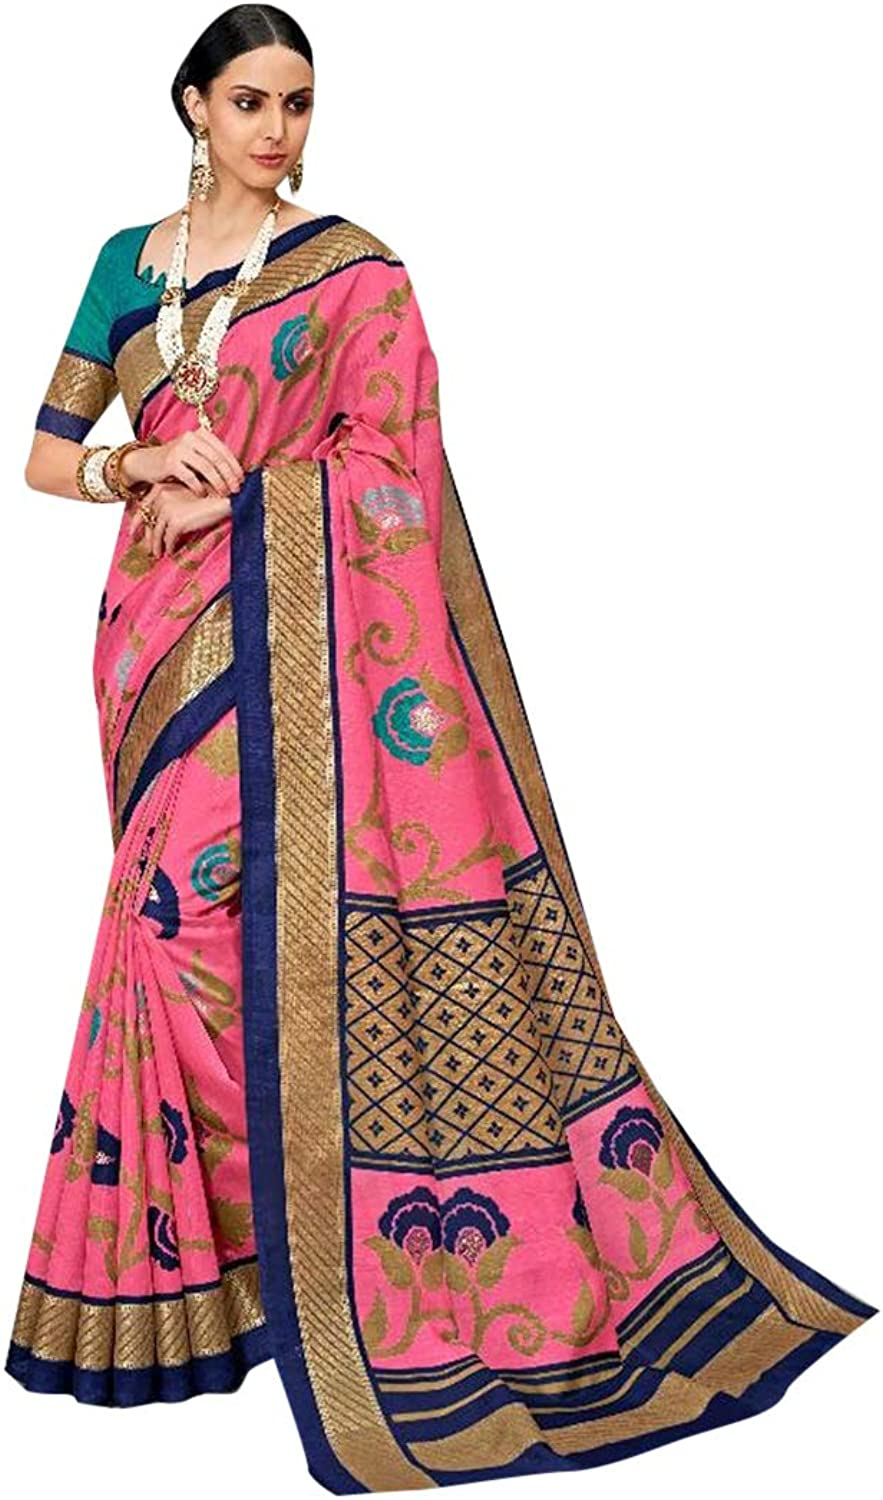 Pink Indian Rich Silk Sari with Stylish Blouse for Women Festive Party wear Designer Saree 7575